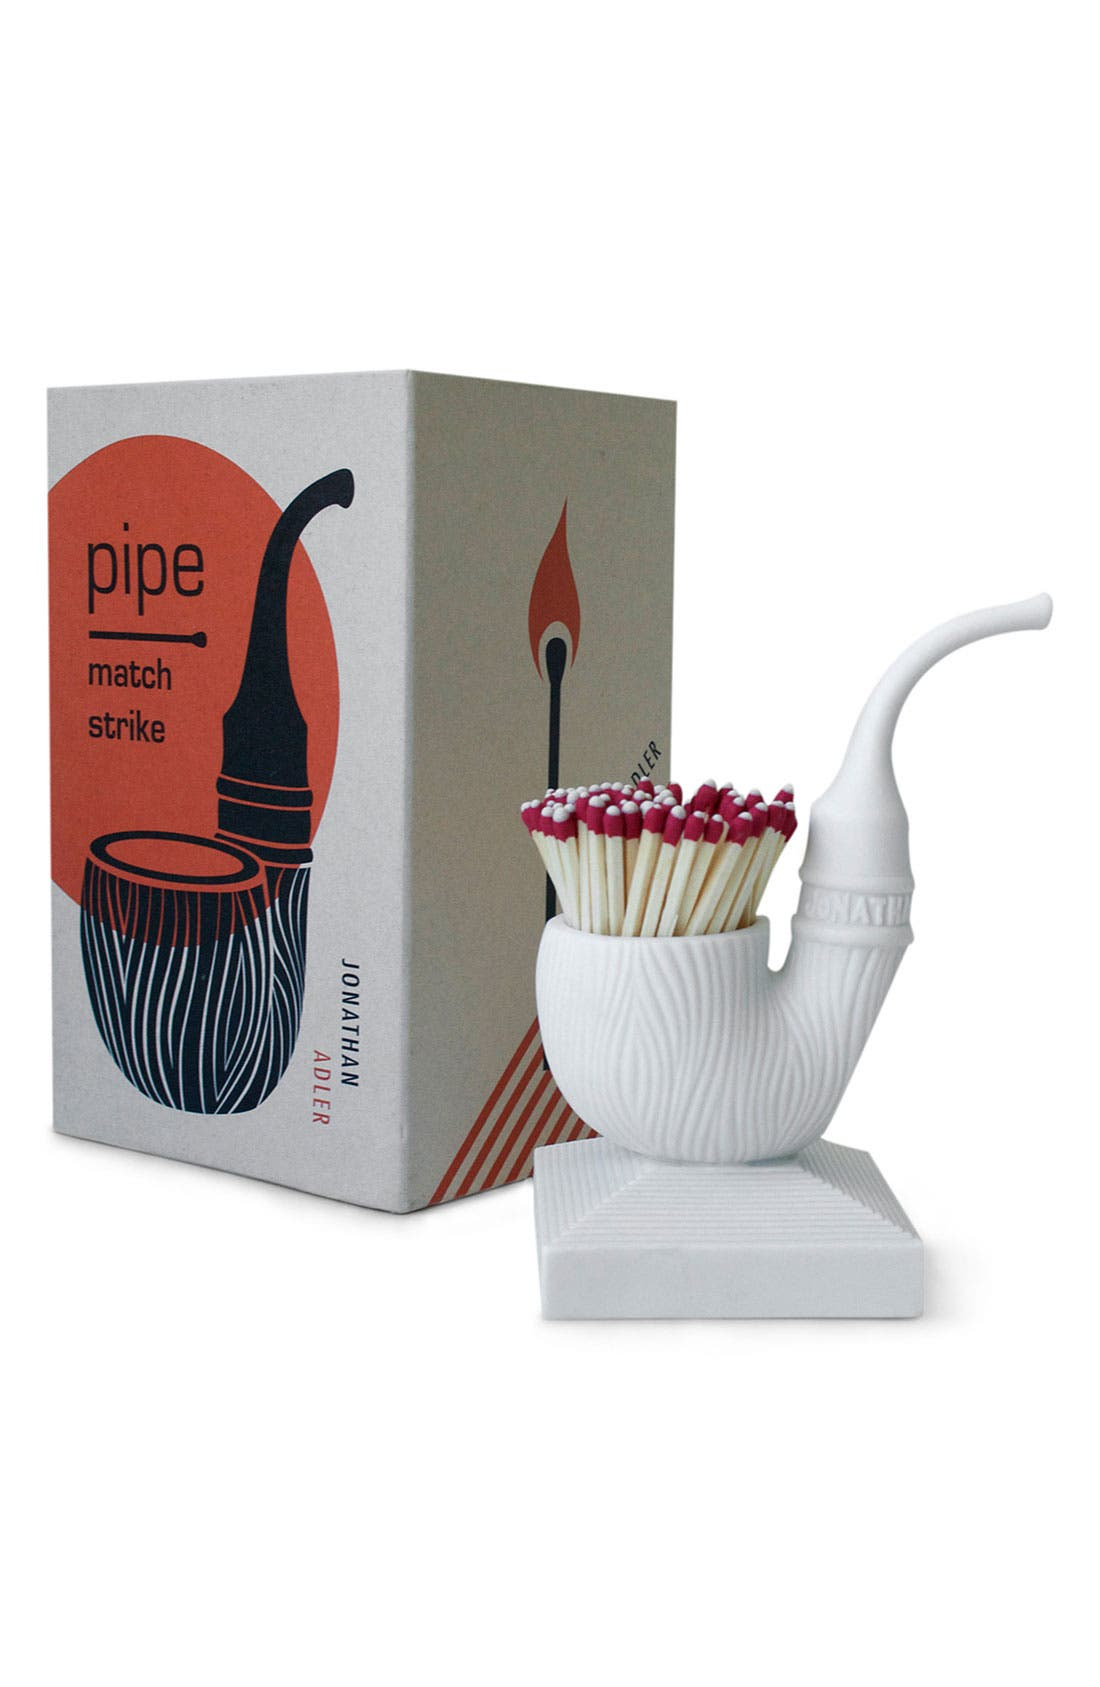 Main Image - Jonathan Adler 'Pipe' Porcelain Match Strike